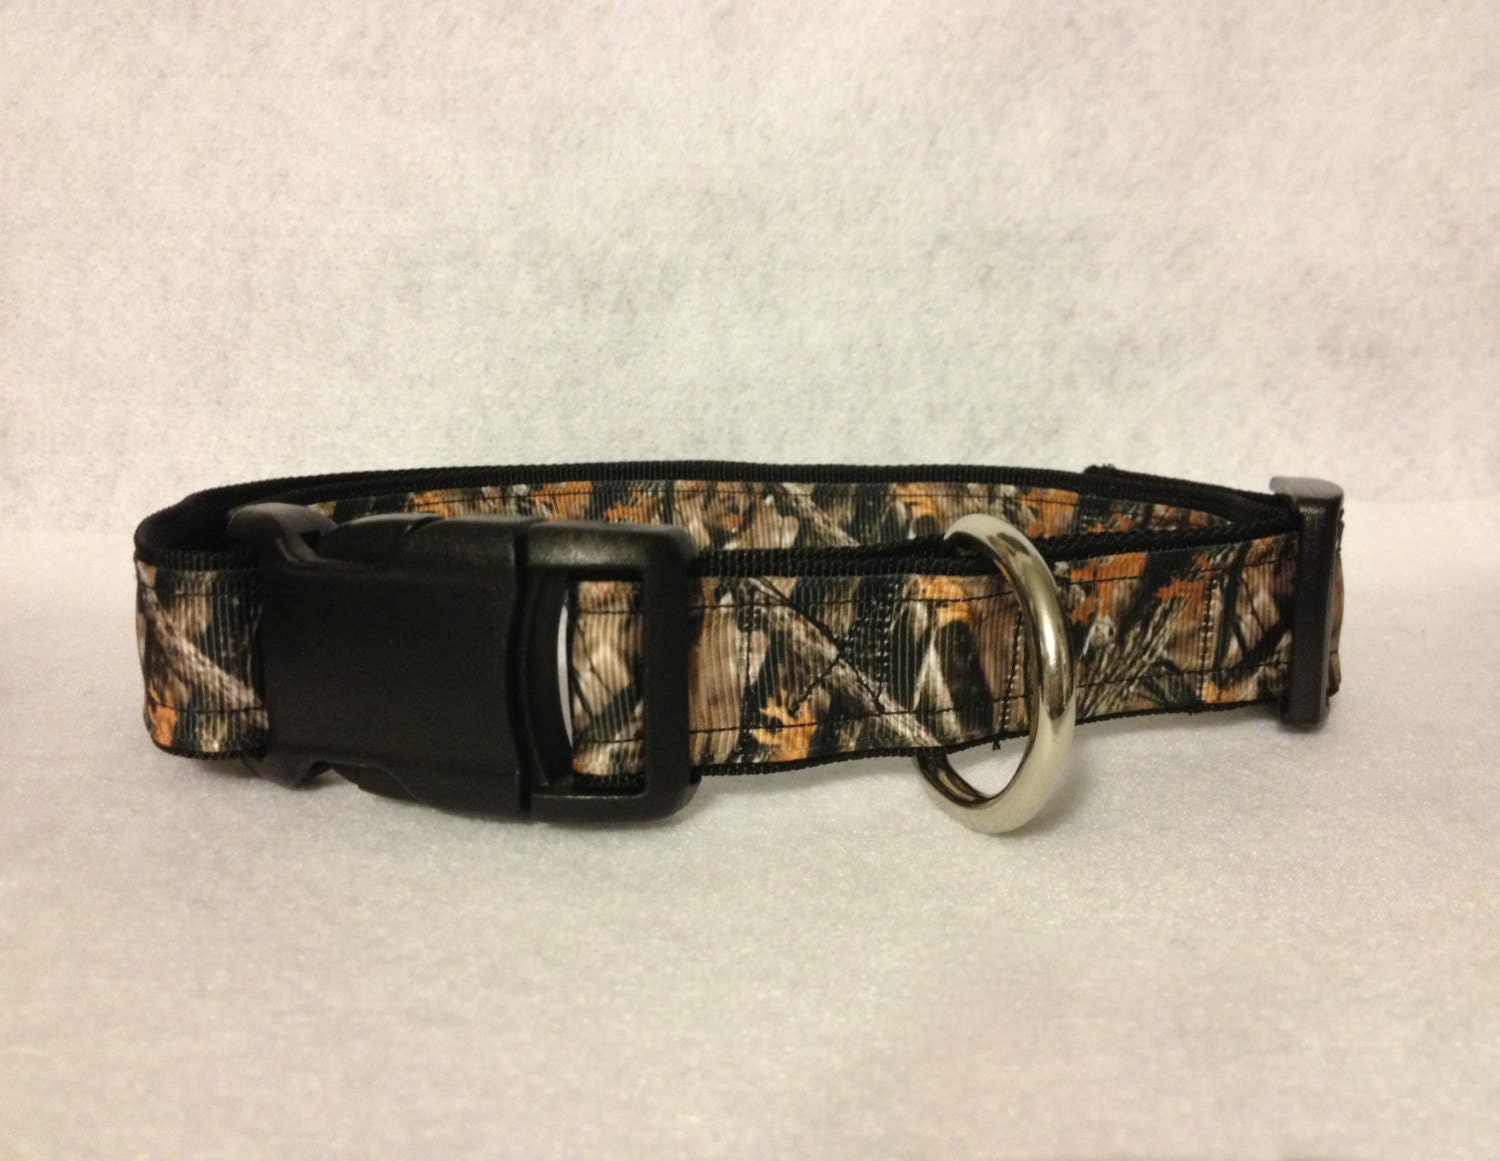 Dog Camo Collars Costomize Name